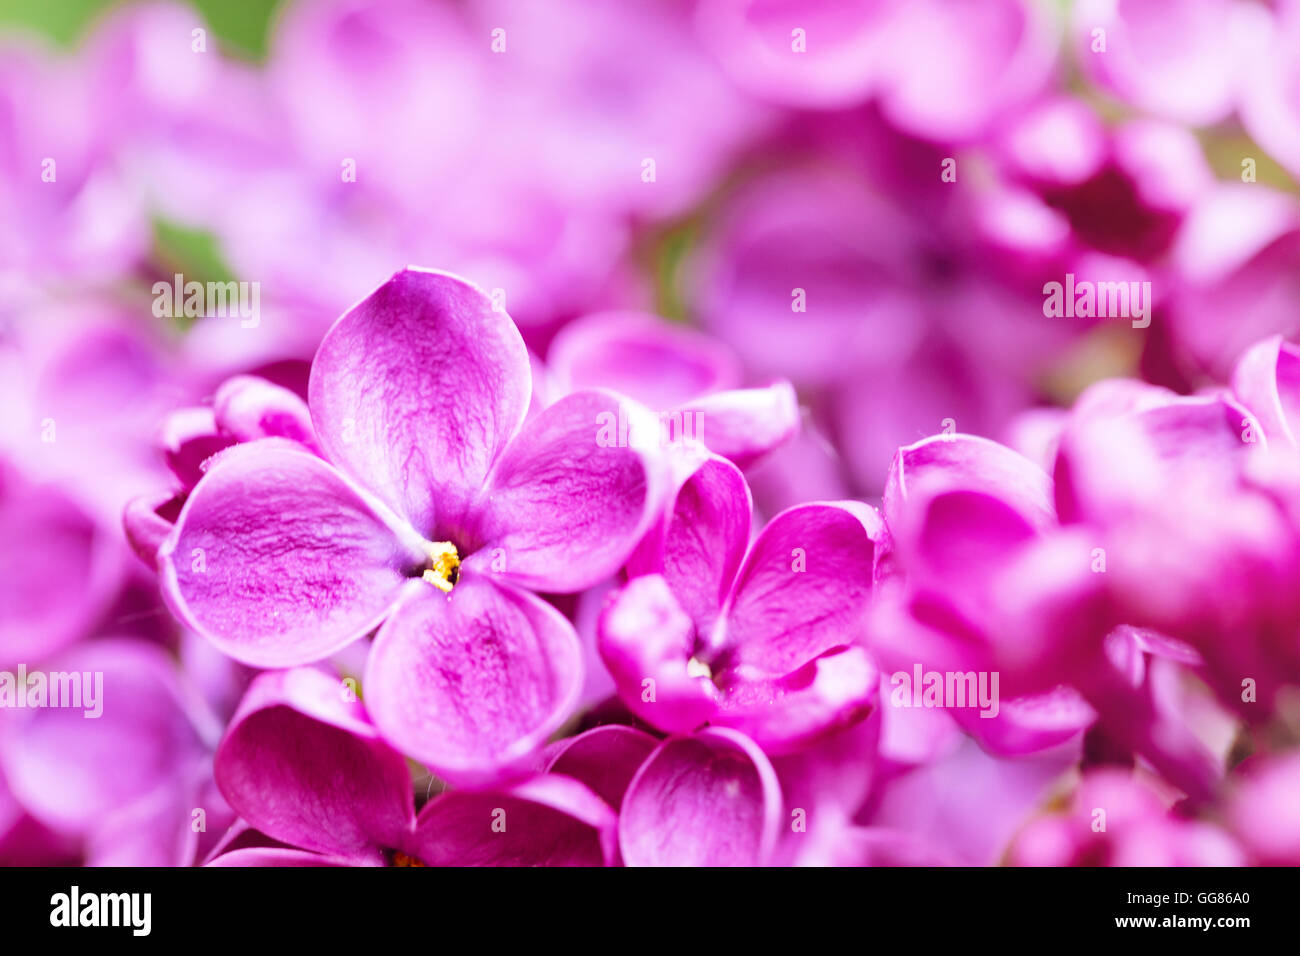 Bright lilac flower shot with selective focus - Stock Image